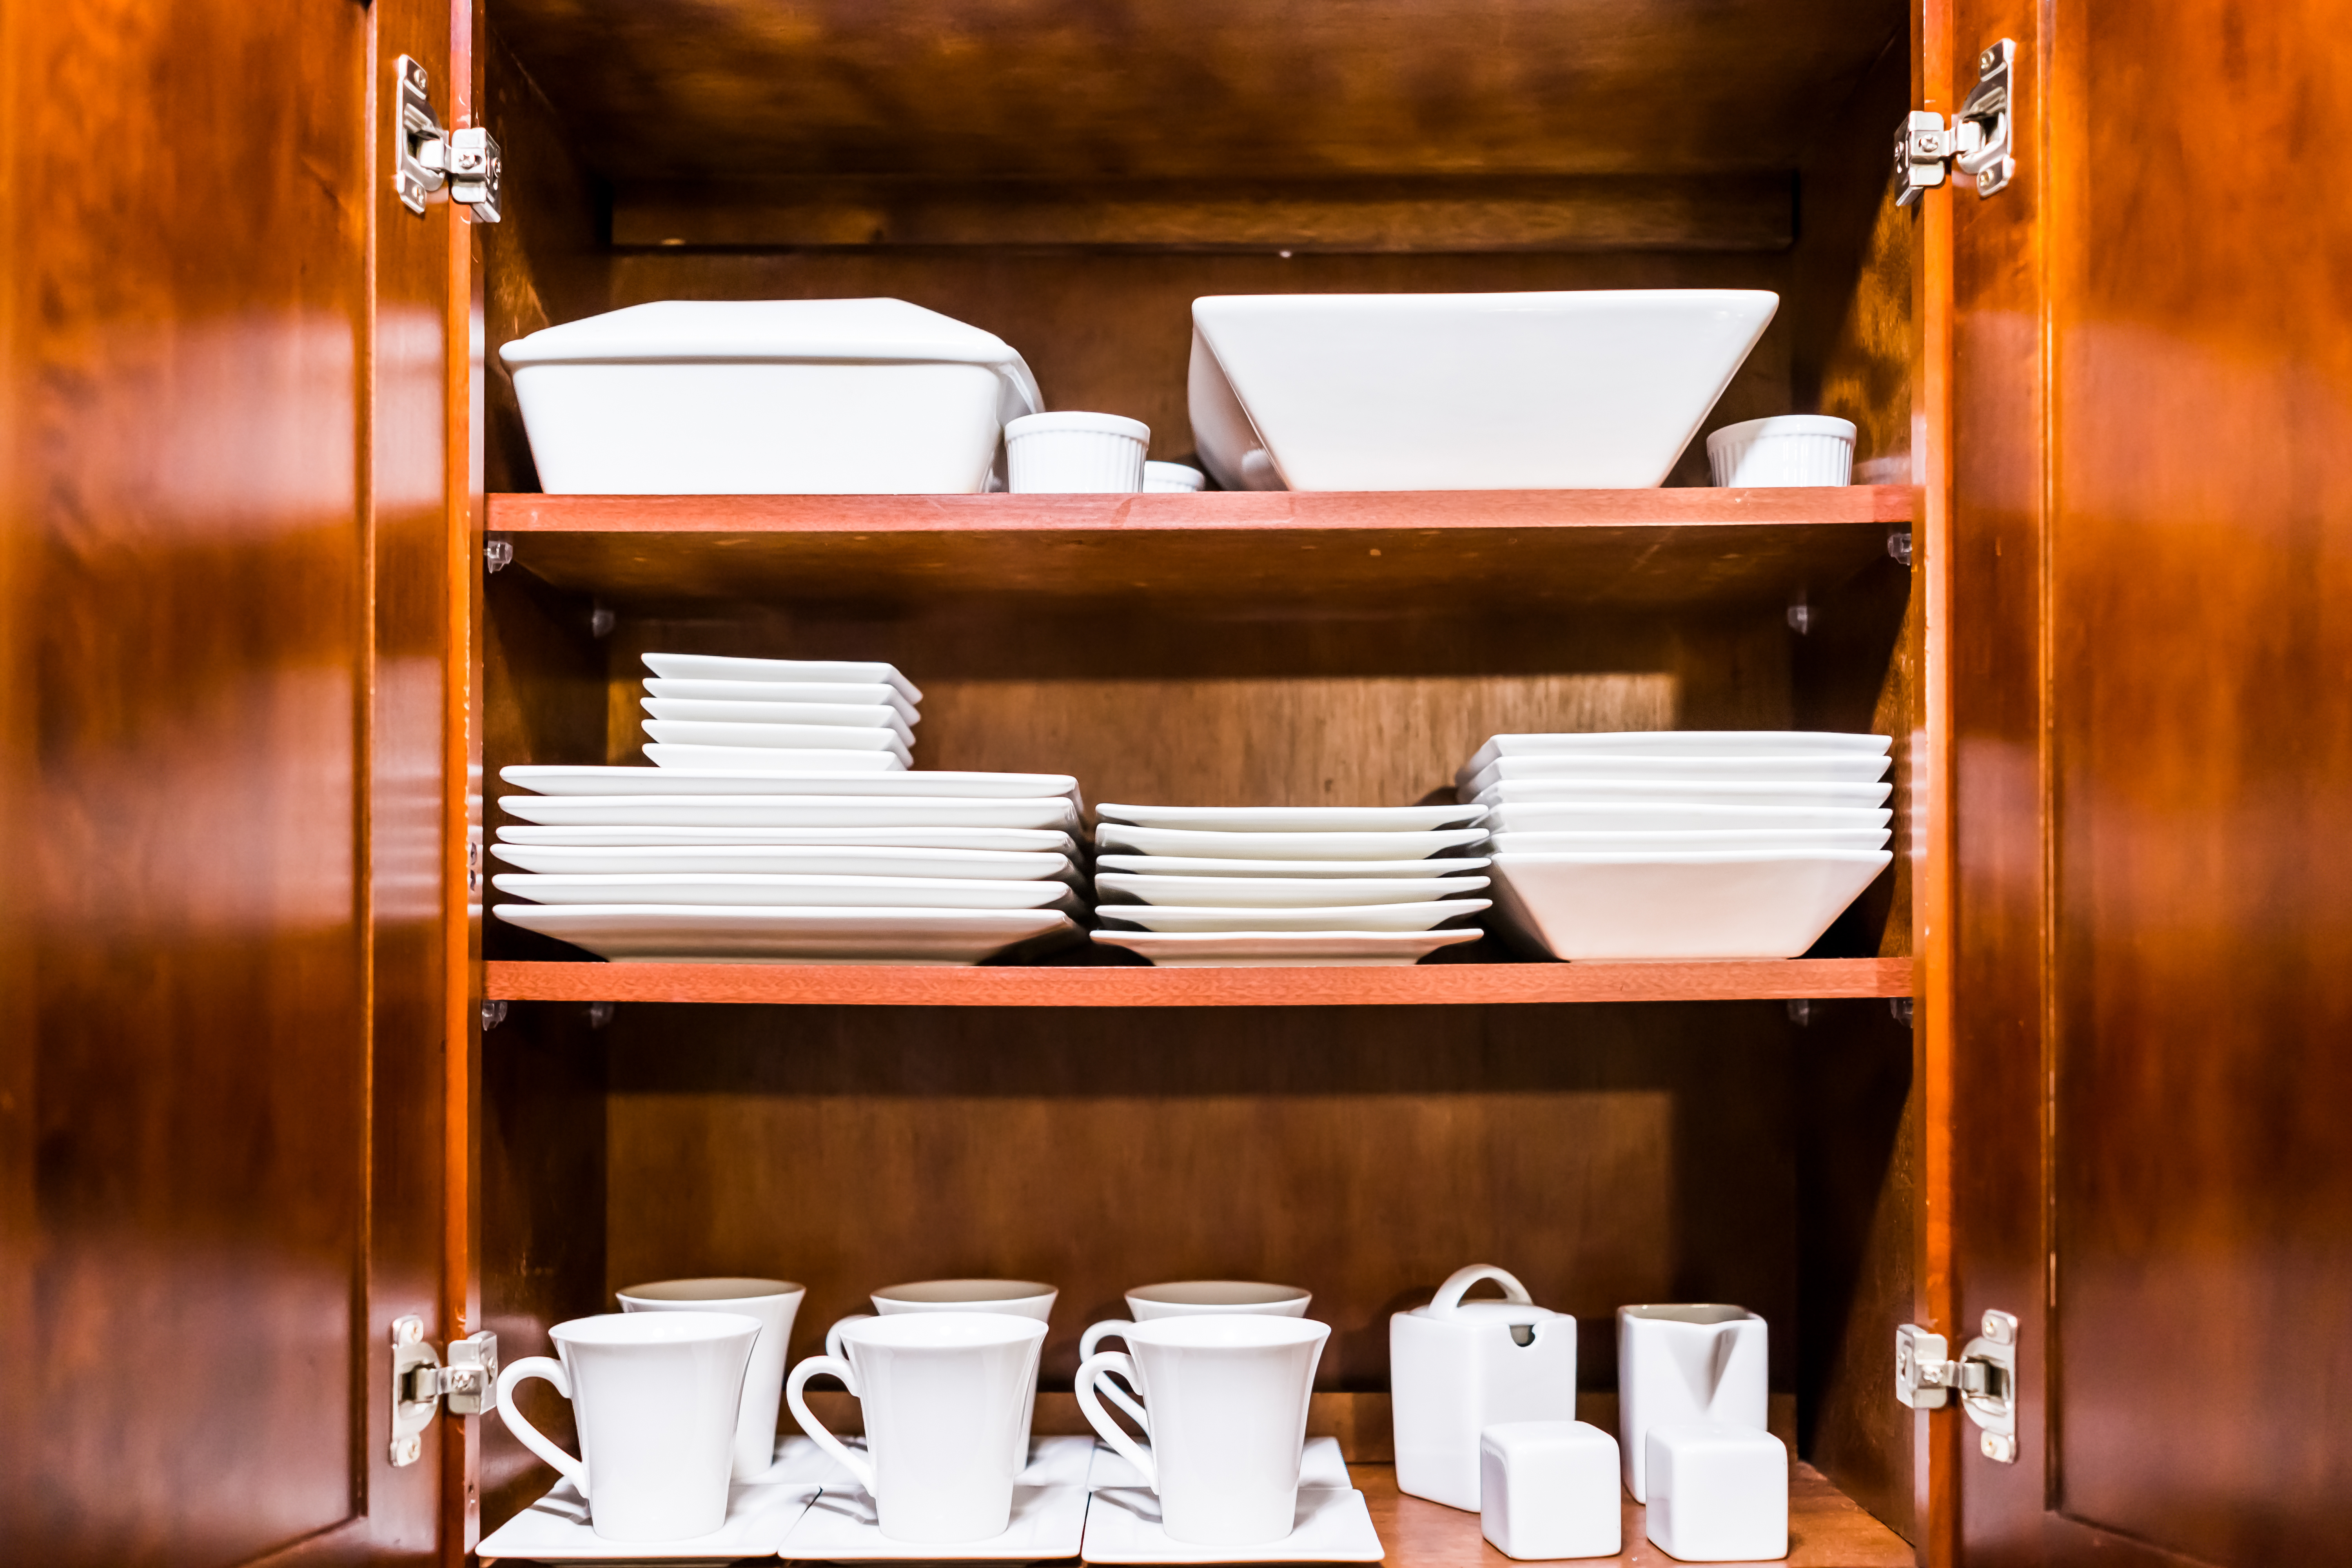 Open wooden kitchen cabinet door cupboard with many white dishes, plates, cups on shelves closeup